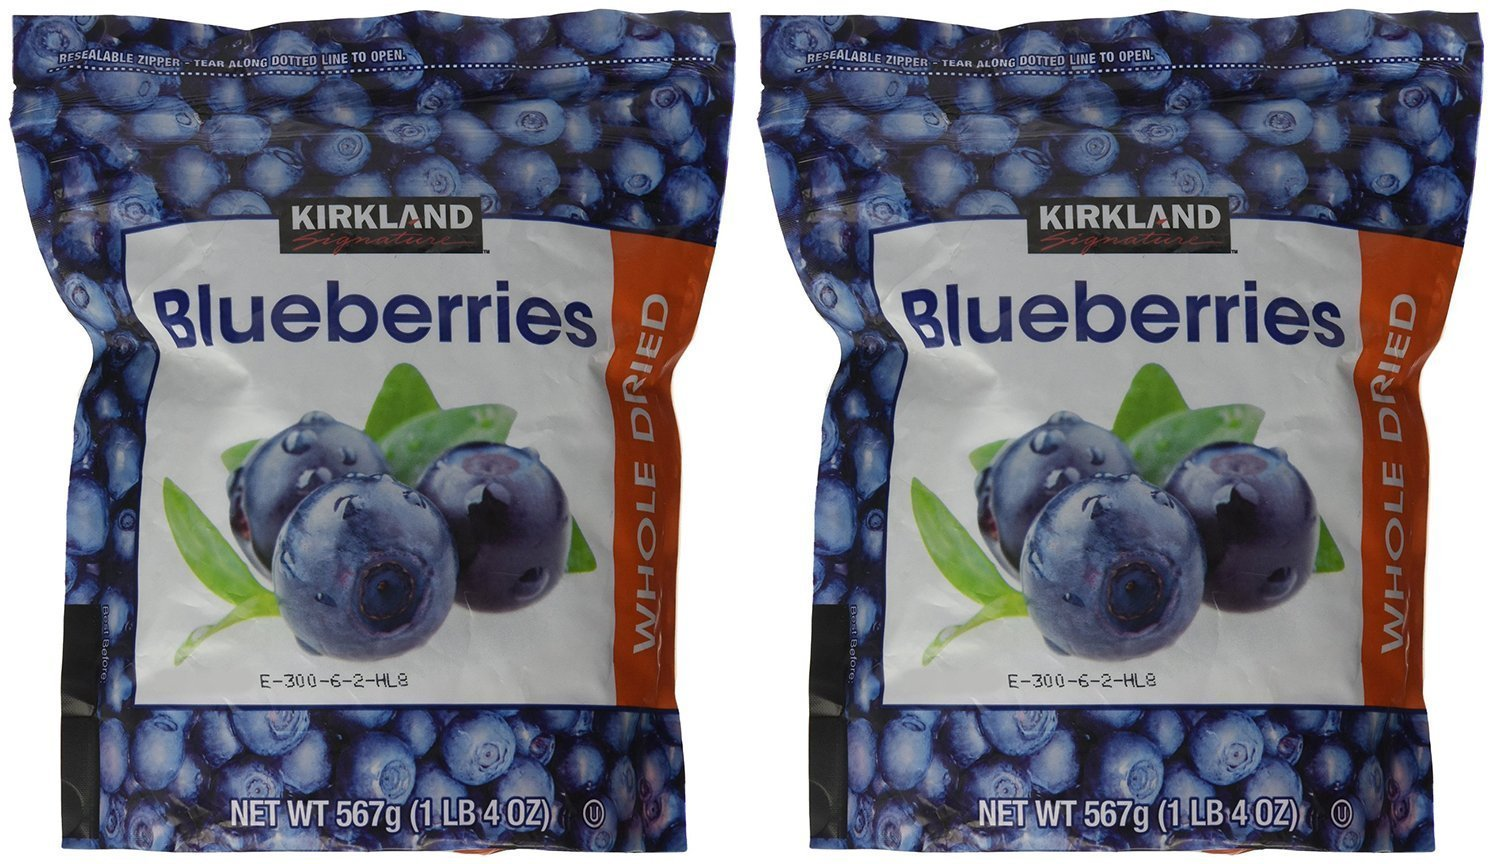 Kirkland Signature - Dried Blueberries, 20 Ounce - Pack of 2